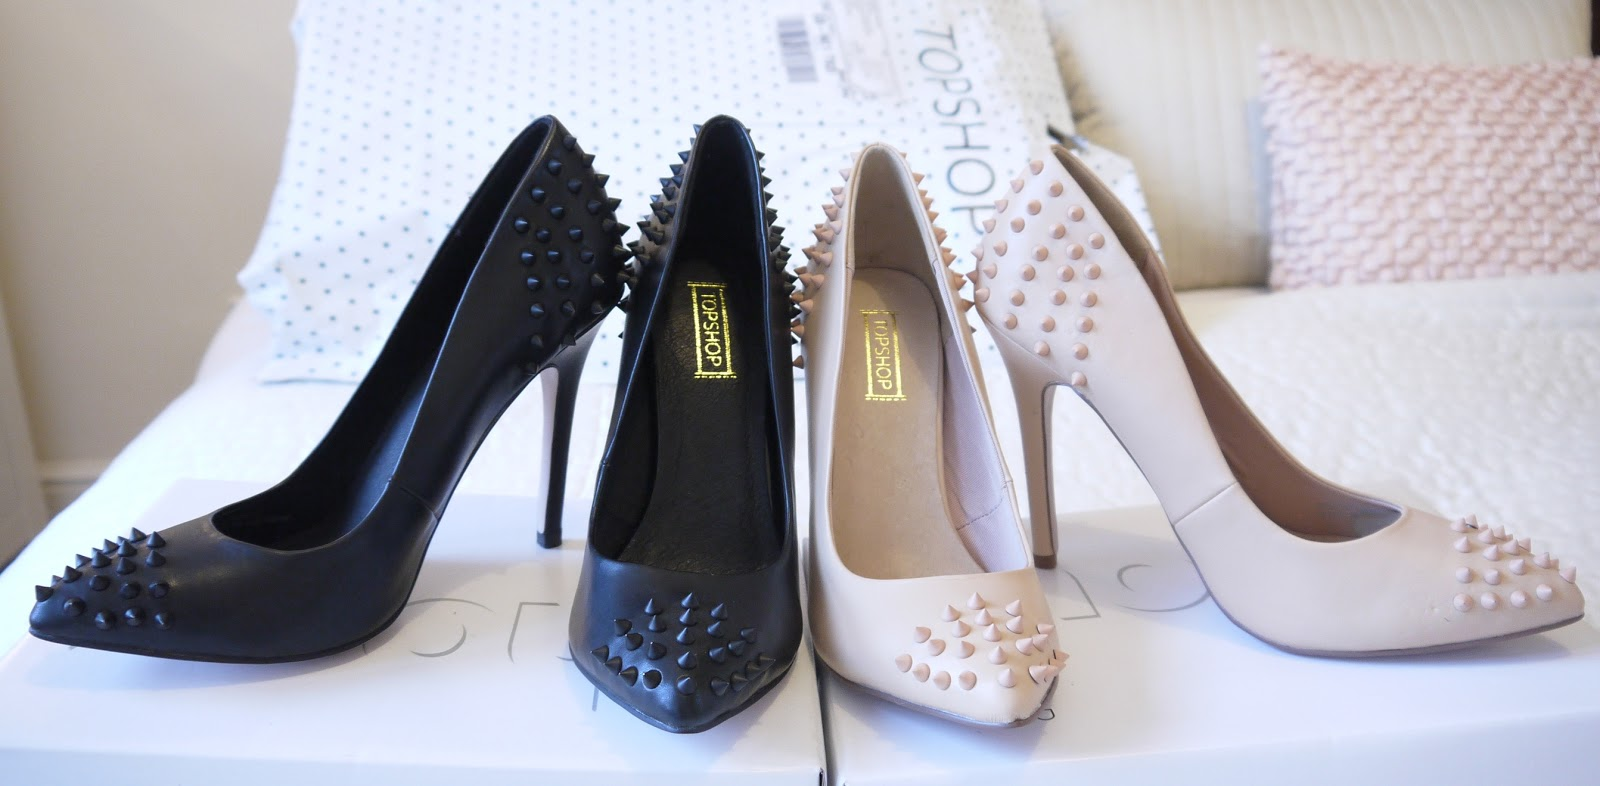 6558b0ad5 Whilst perusing Topshop online a couple days ago looking for wedding shoes  (guest, not bride) I stumbled across these beauties.